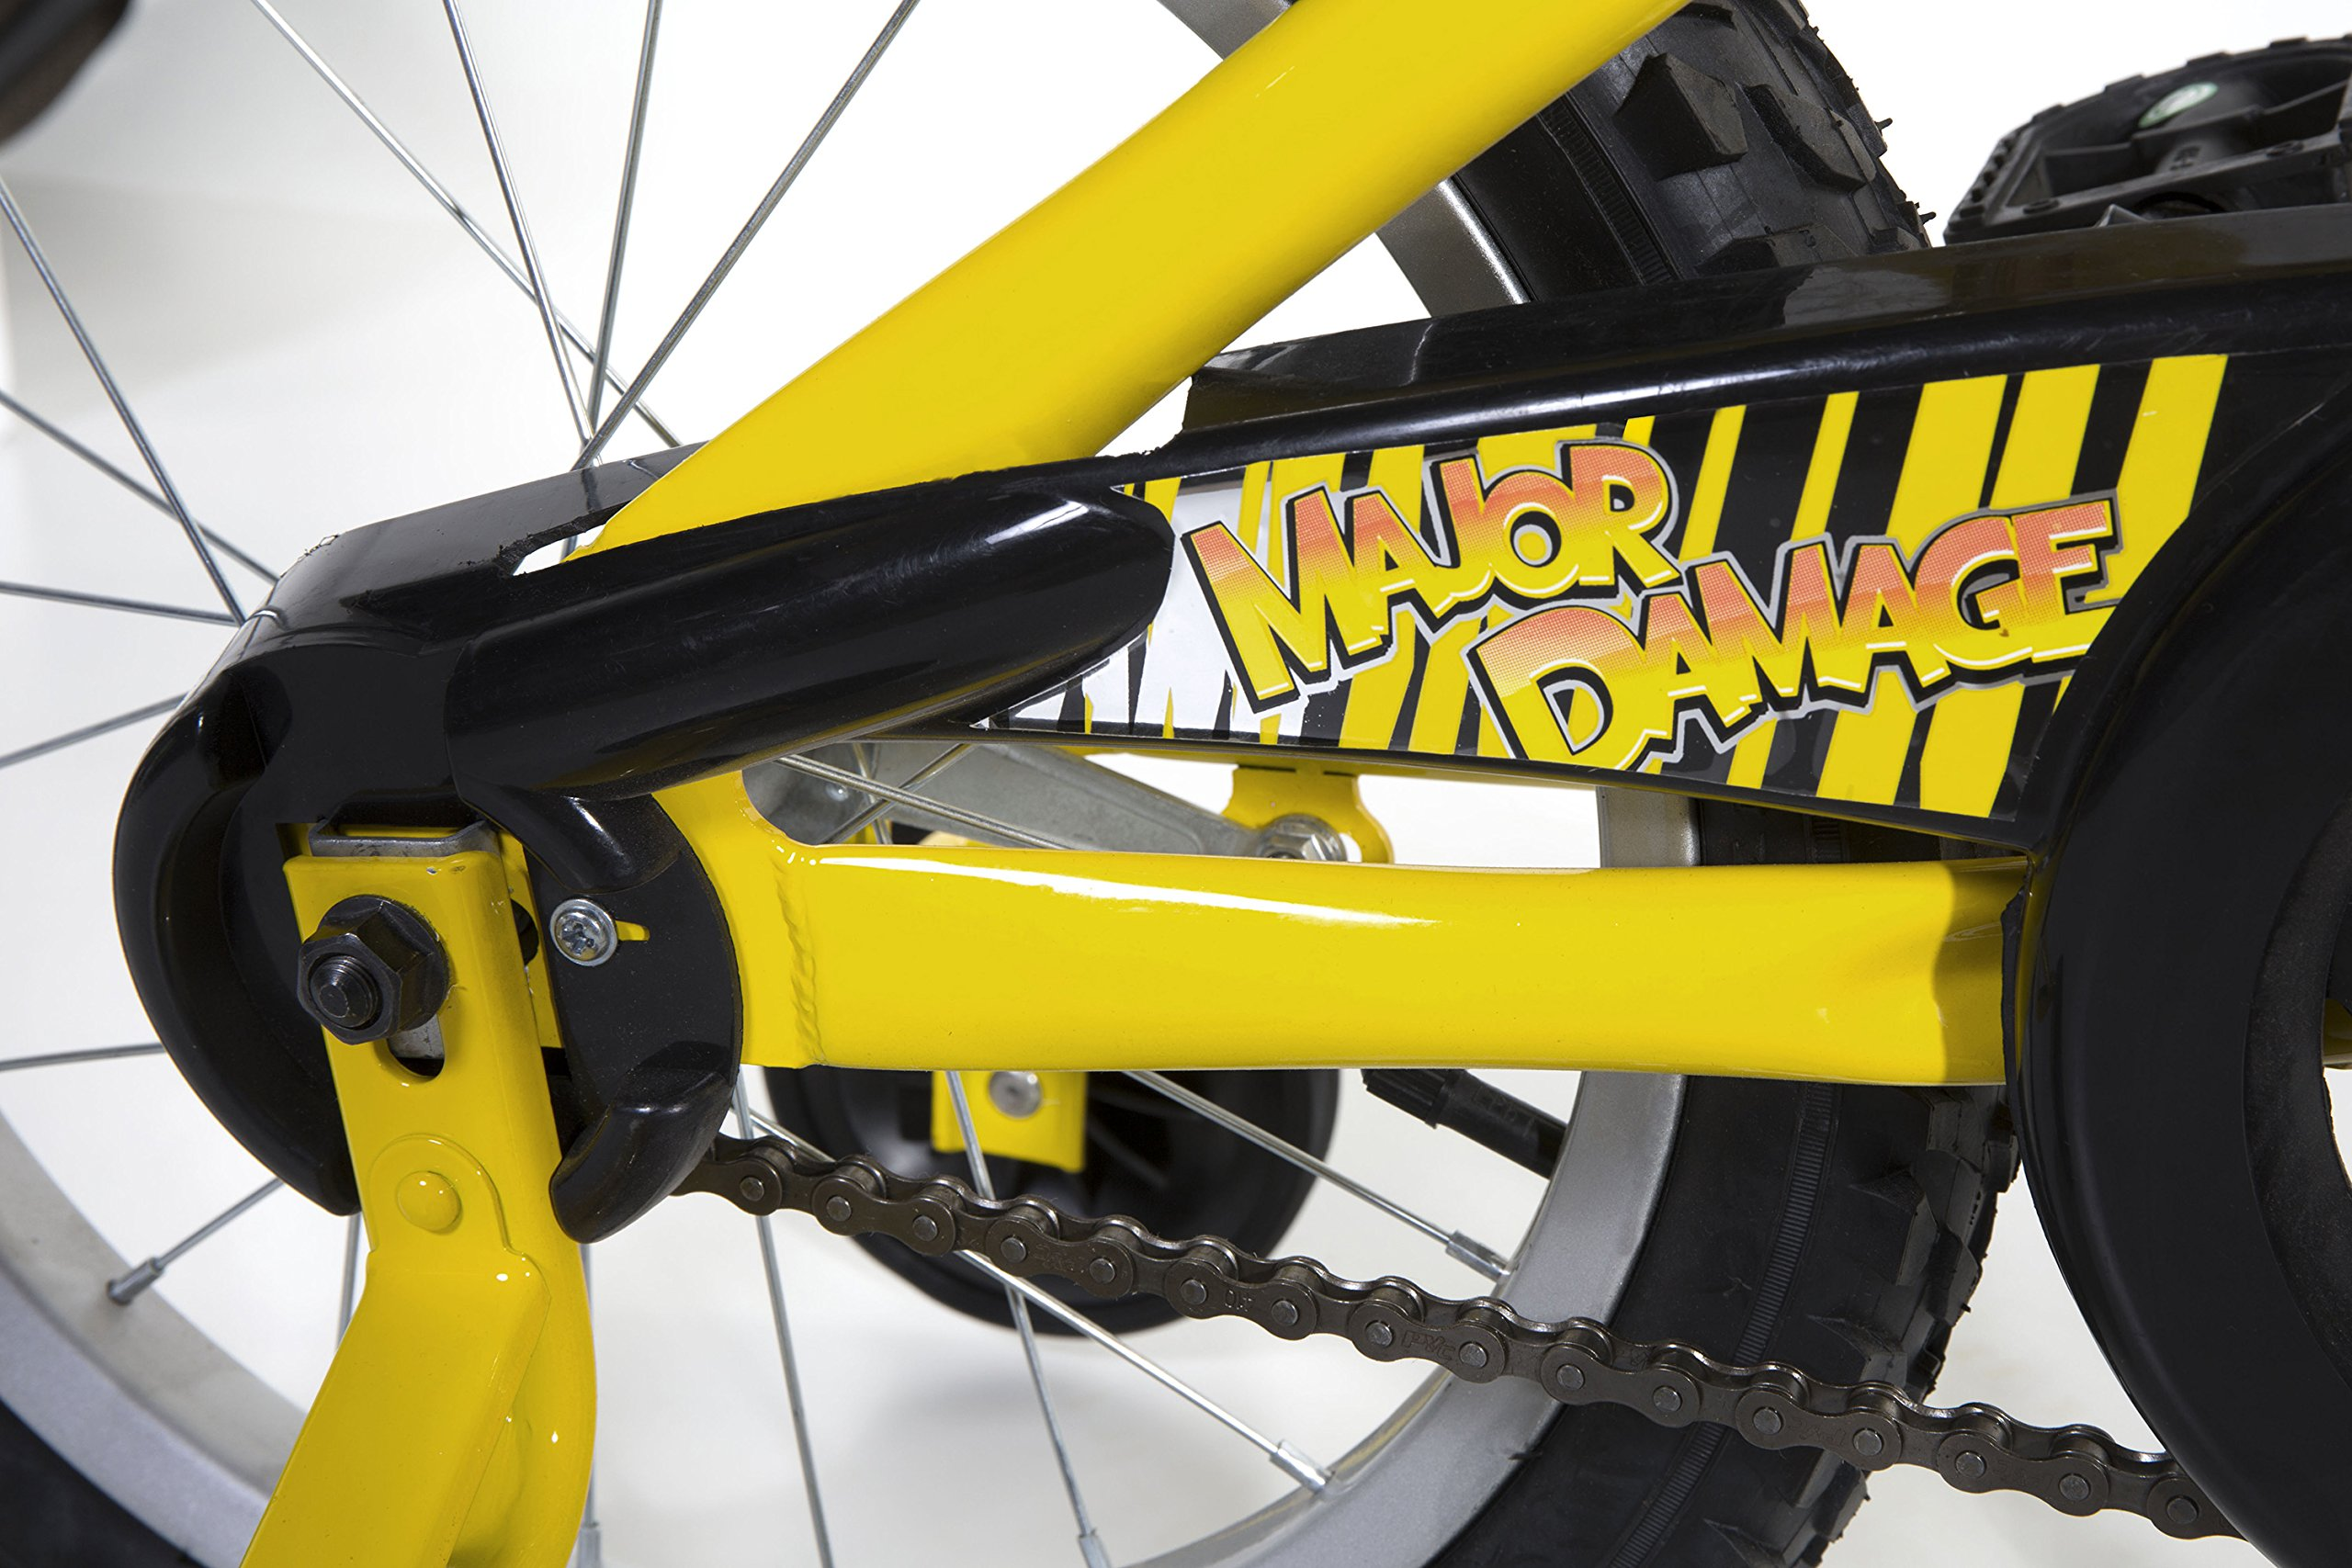 Dynacraft Magna Major Damage Boys BMX Street/Dirt Bike 16'', Yellow/Black by Dynacraft (Image #1)